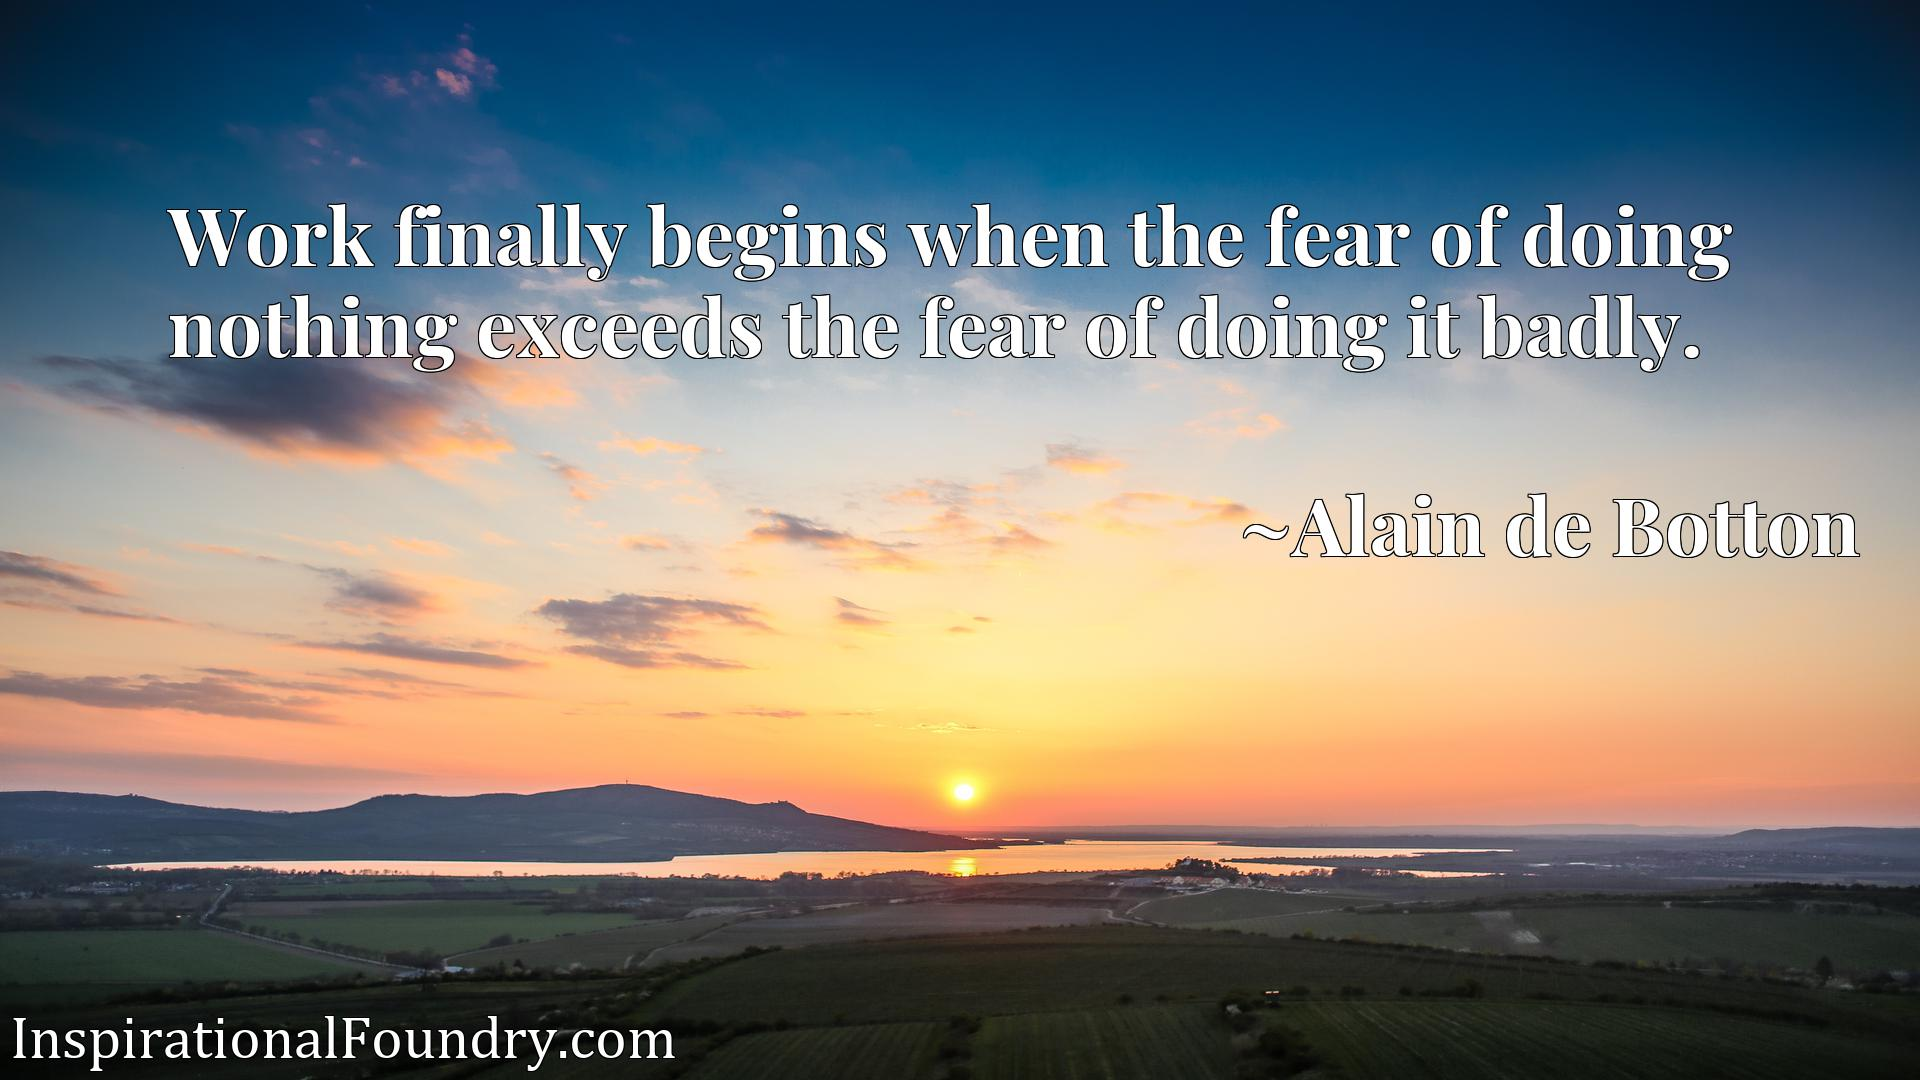 Work finally begins when the fear of doing nothing exceeds the fear of doing it badly.